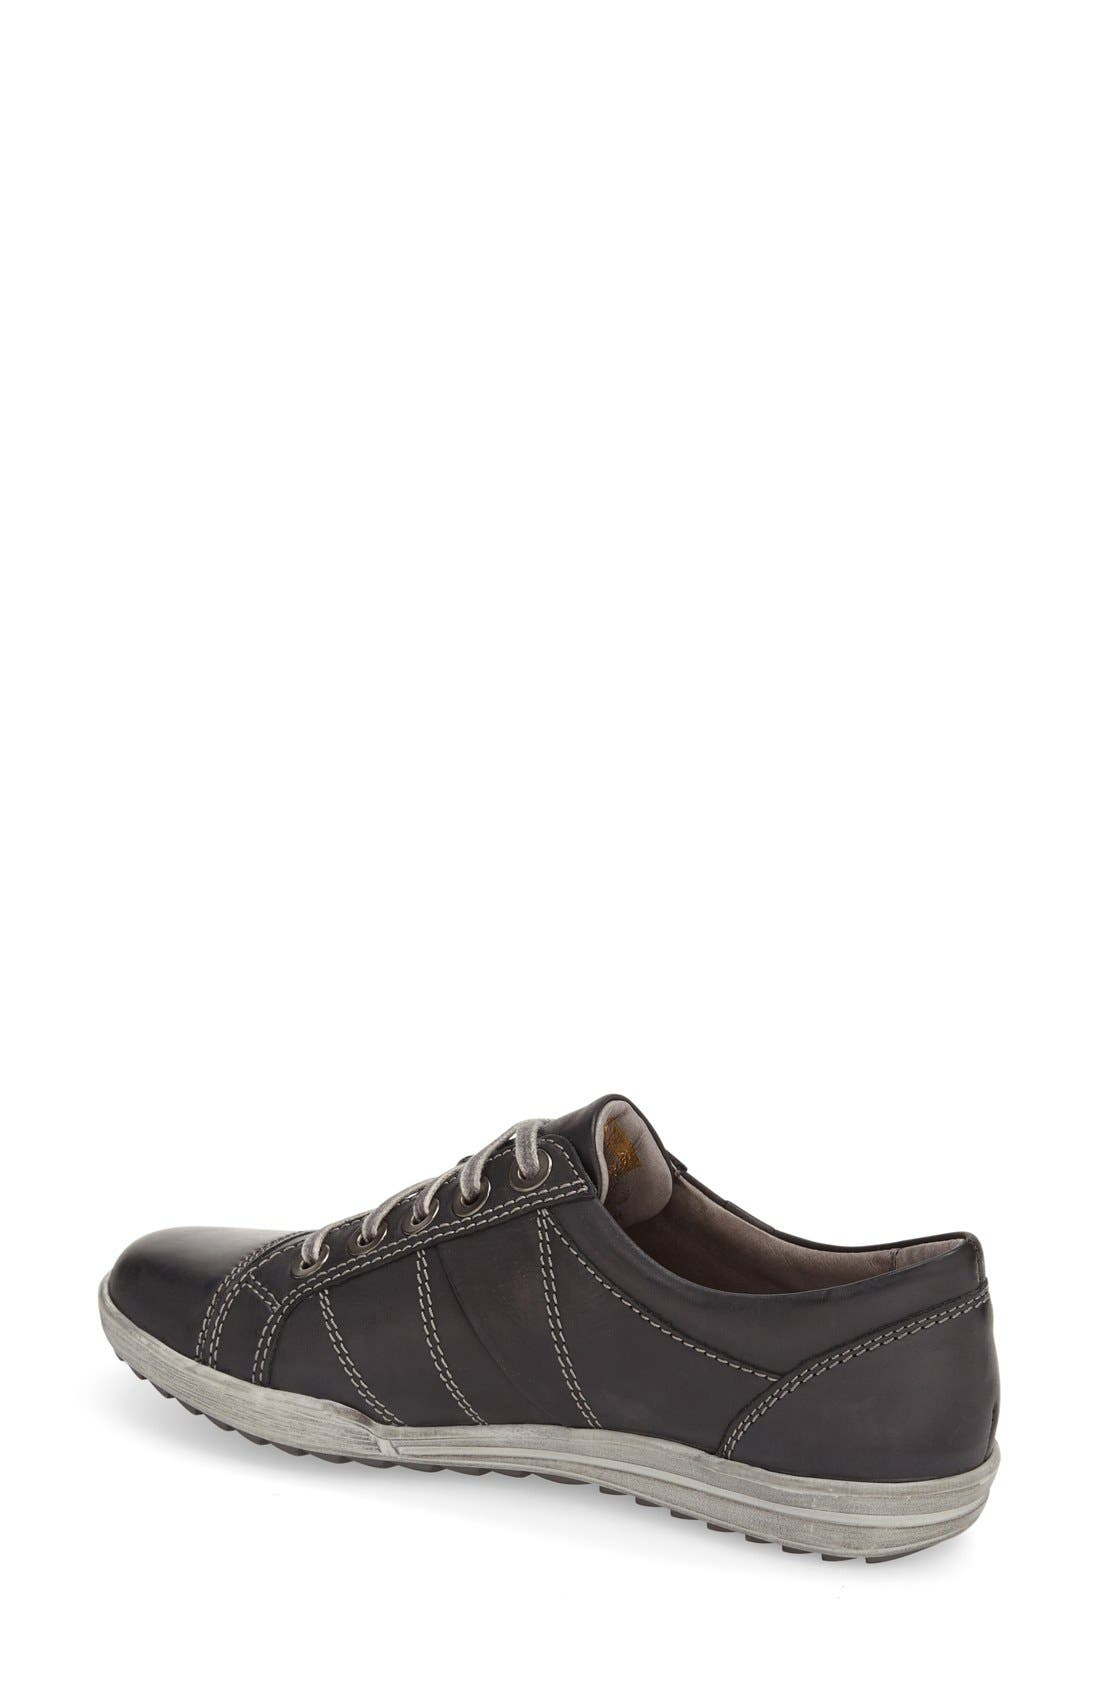 'Dany 05' Leather Sneaker,                             Alternate thumbnail 47, color,